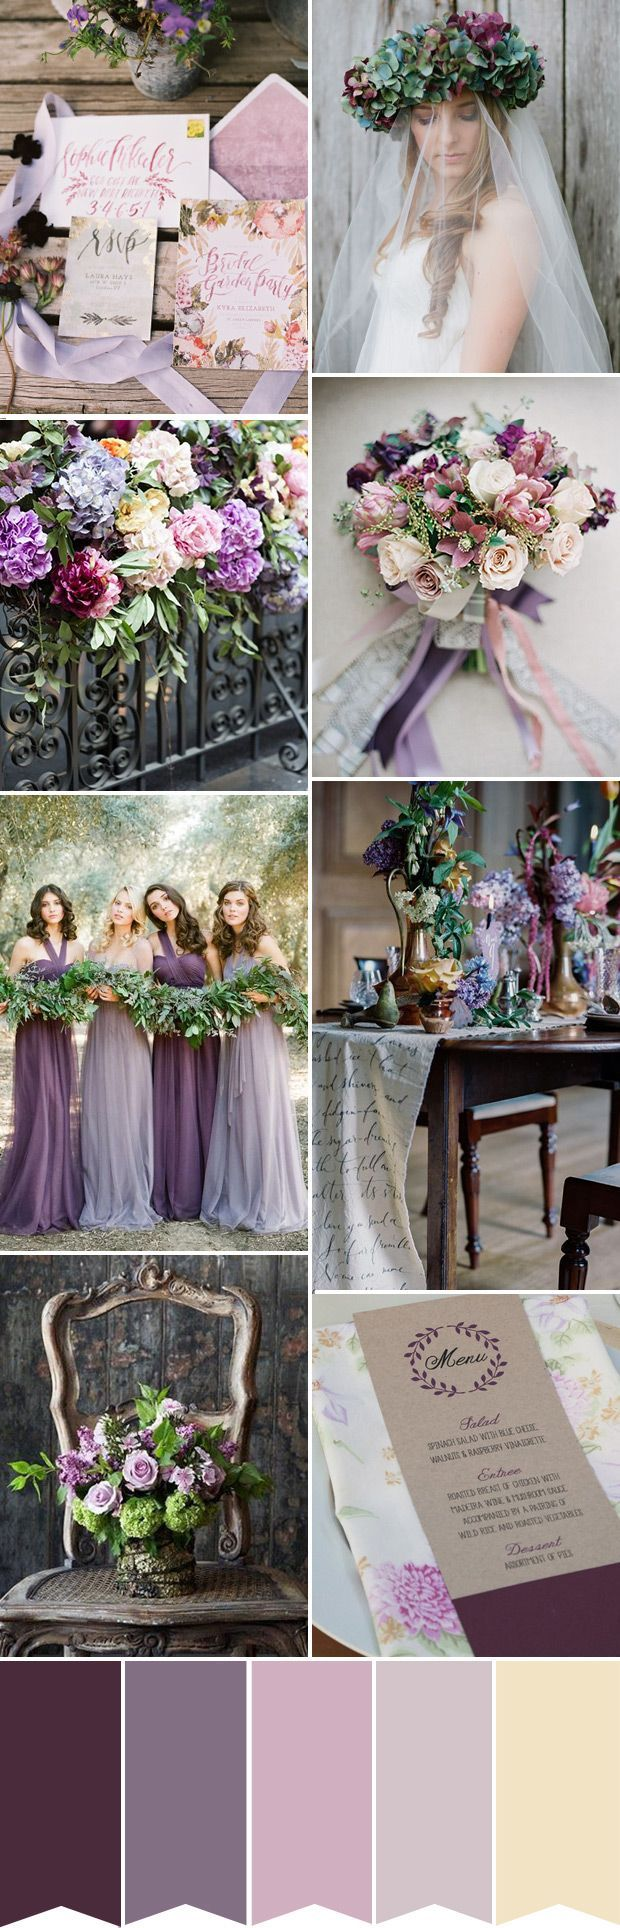 The Perfect Look for a Purple Wedding in 2015 | Wedding, Wedding and ...